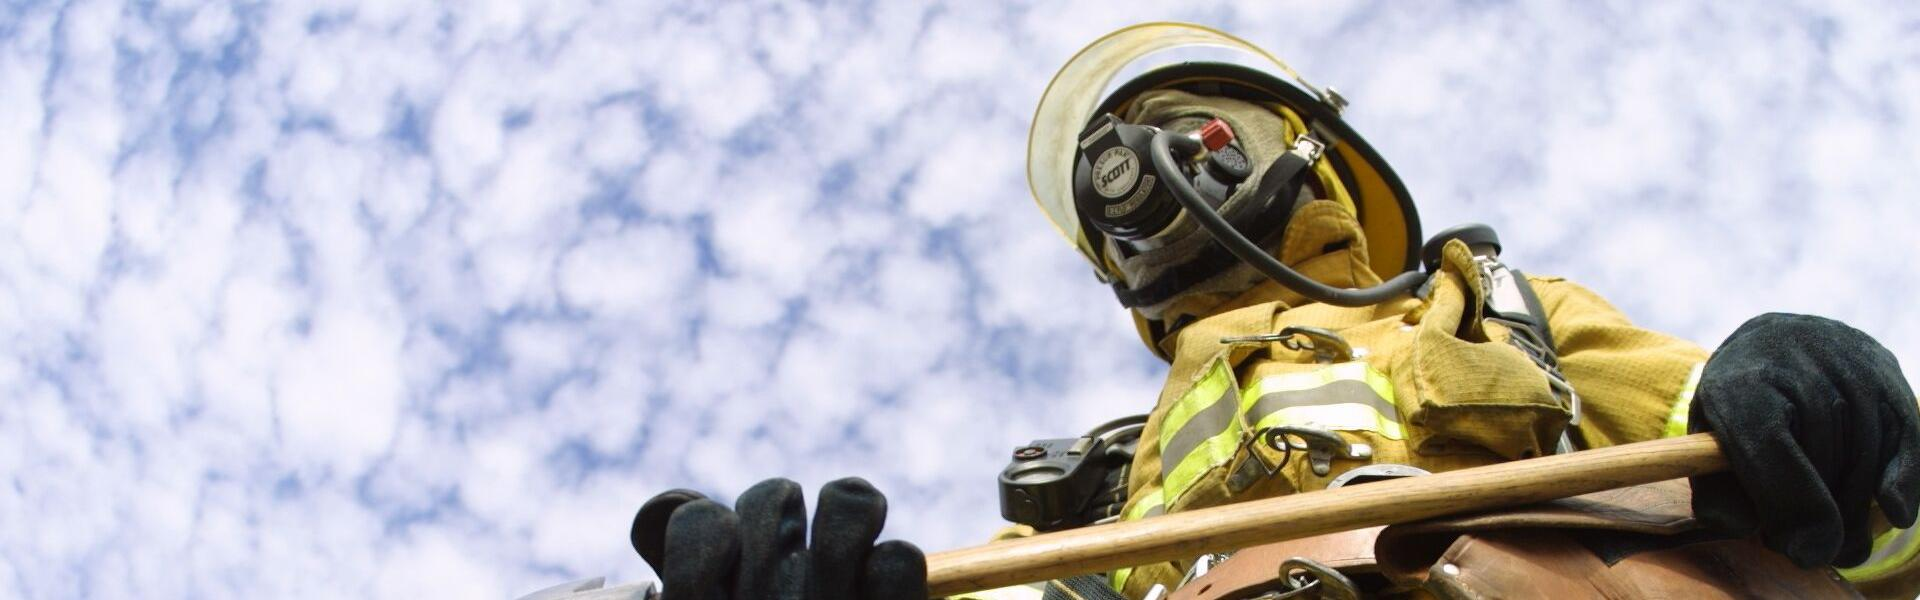 fire fighter viewed from below with sky and clouds